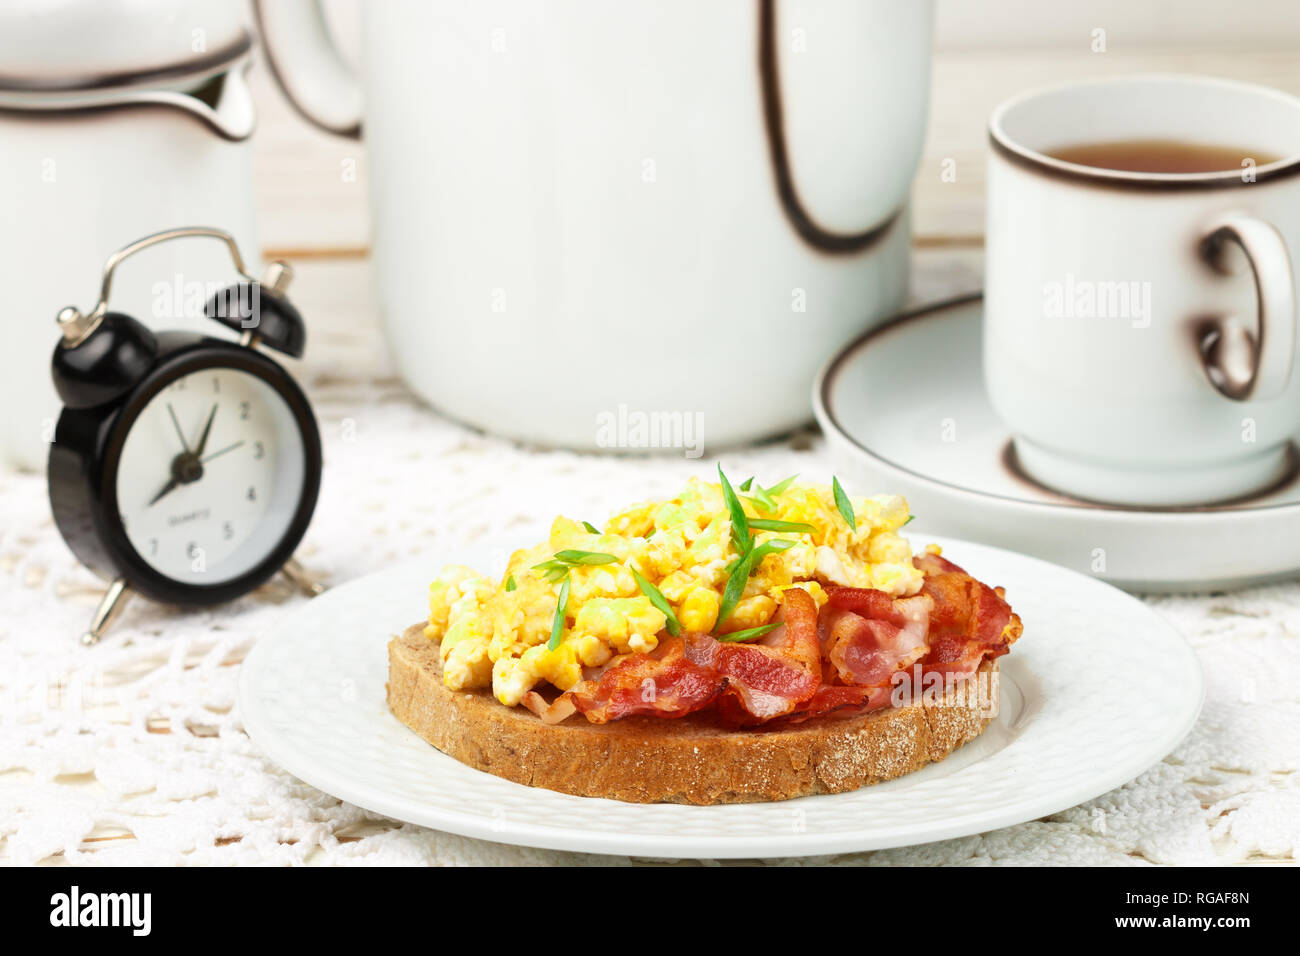 Bread toast with scrambled eggs, fried bacon and green onions.  Delicious breakfast. Brunch. Selective focus - Stock Image